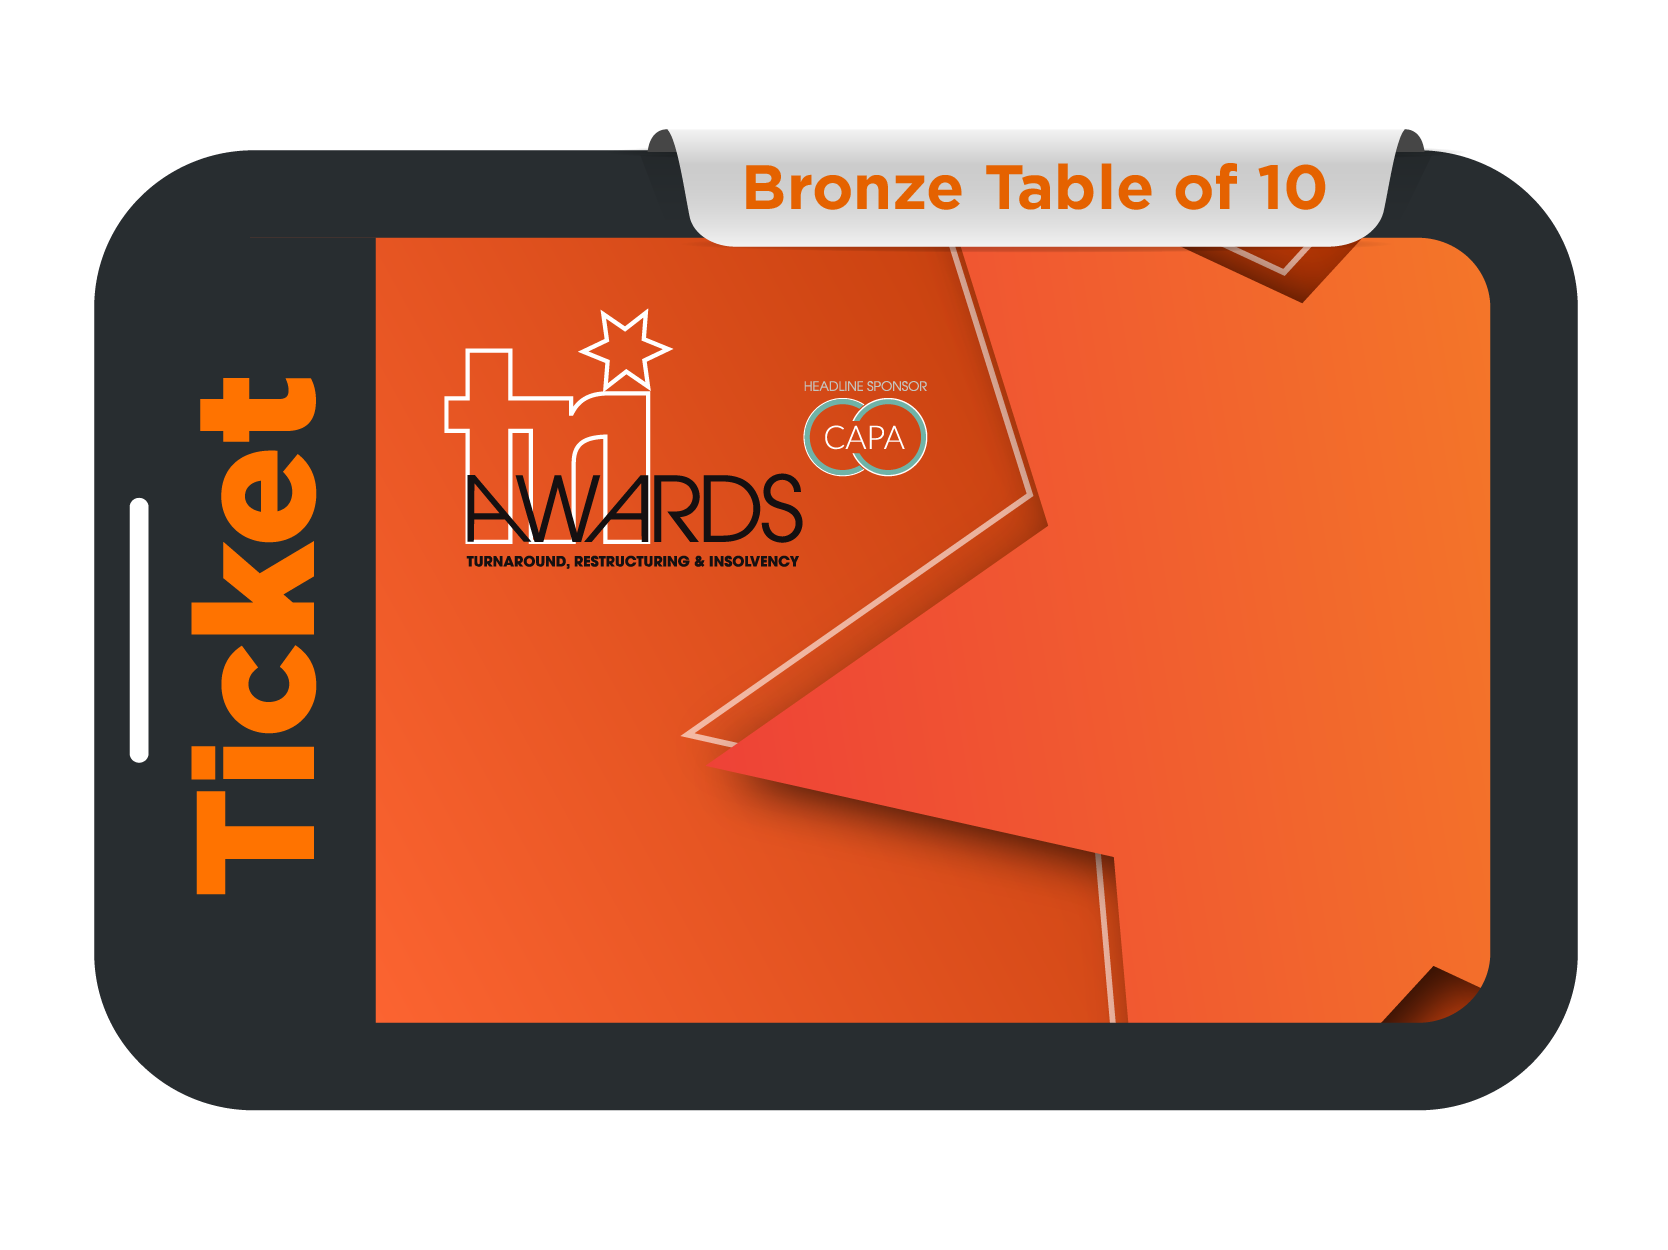 Bronze Table of 10 - TRI Awards 2021